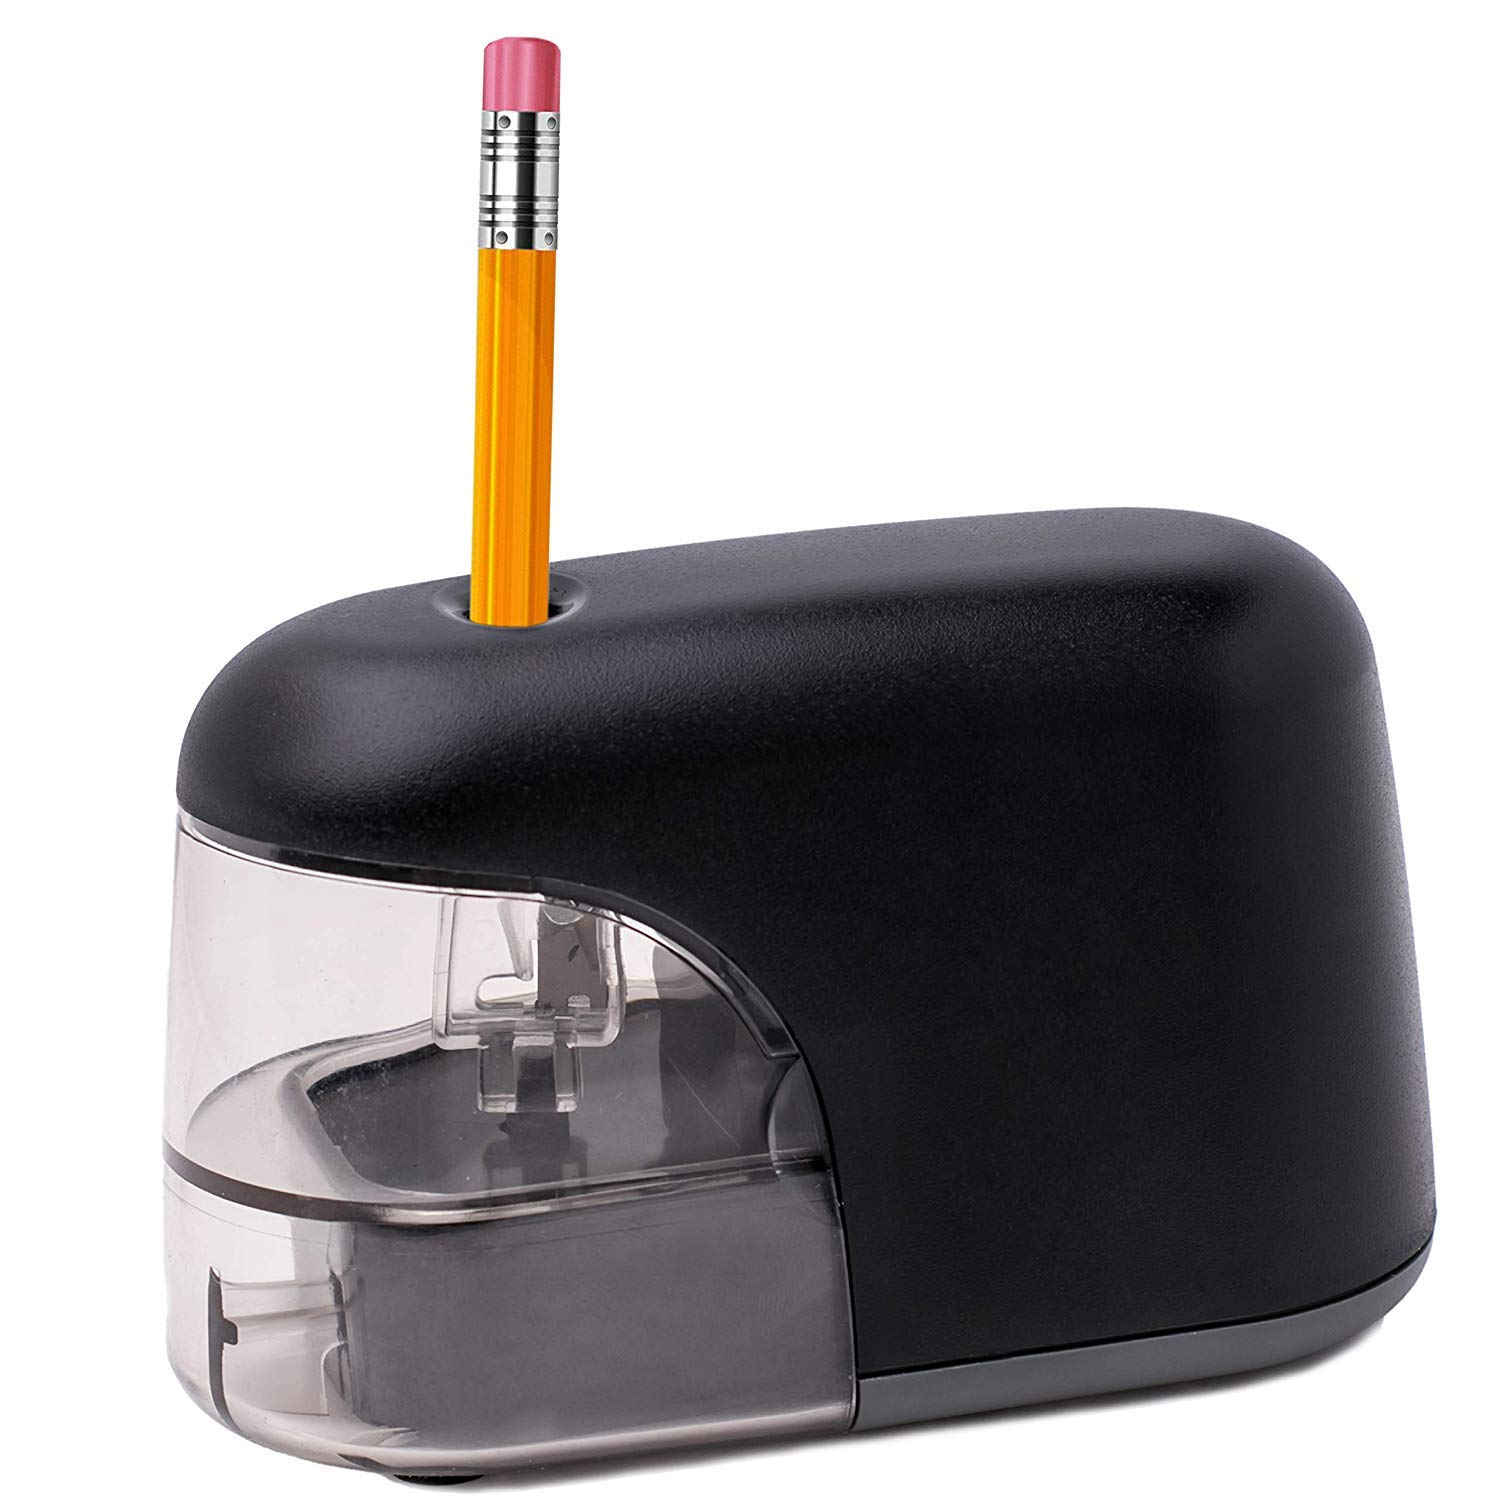 Electric Pencil Sharpener, Heavy-duty Helical Blade,Auto Stop, Perfect for Artist, Student, Supplies for Classroom/Office/Home, for 6.5-8mm diameter Pencils